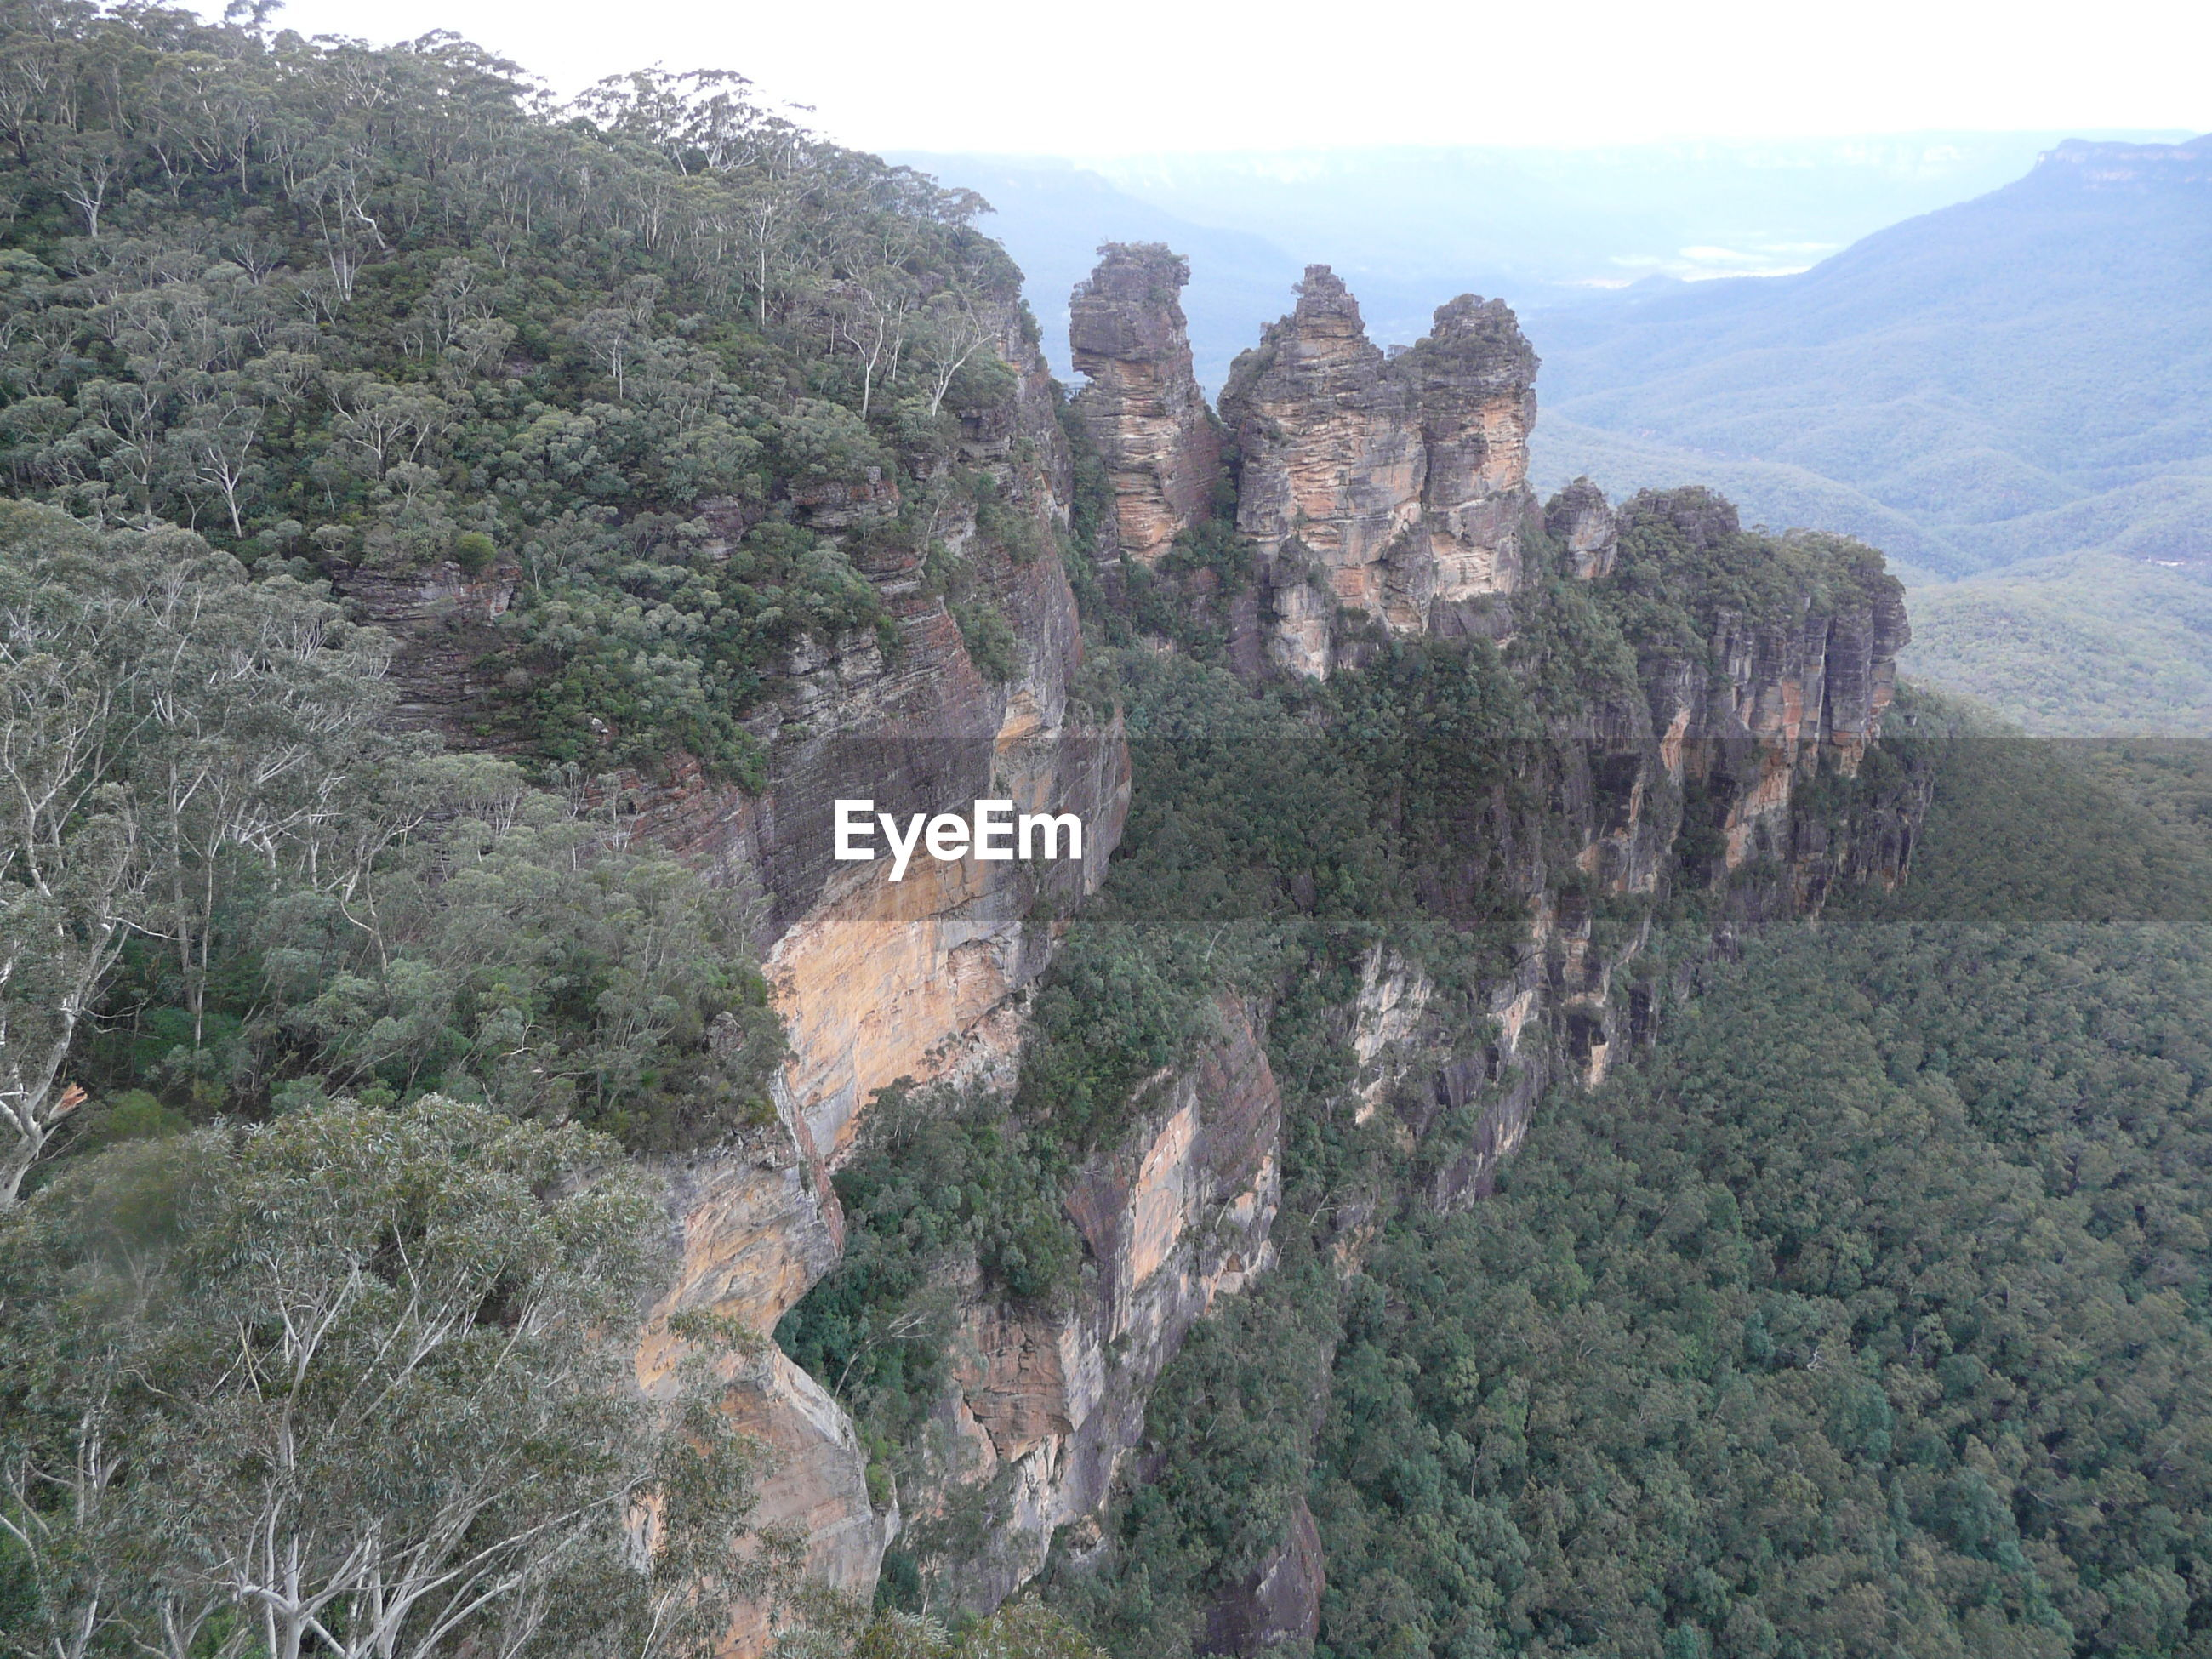 Scenic view of three sisters rock formation